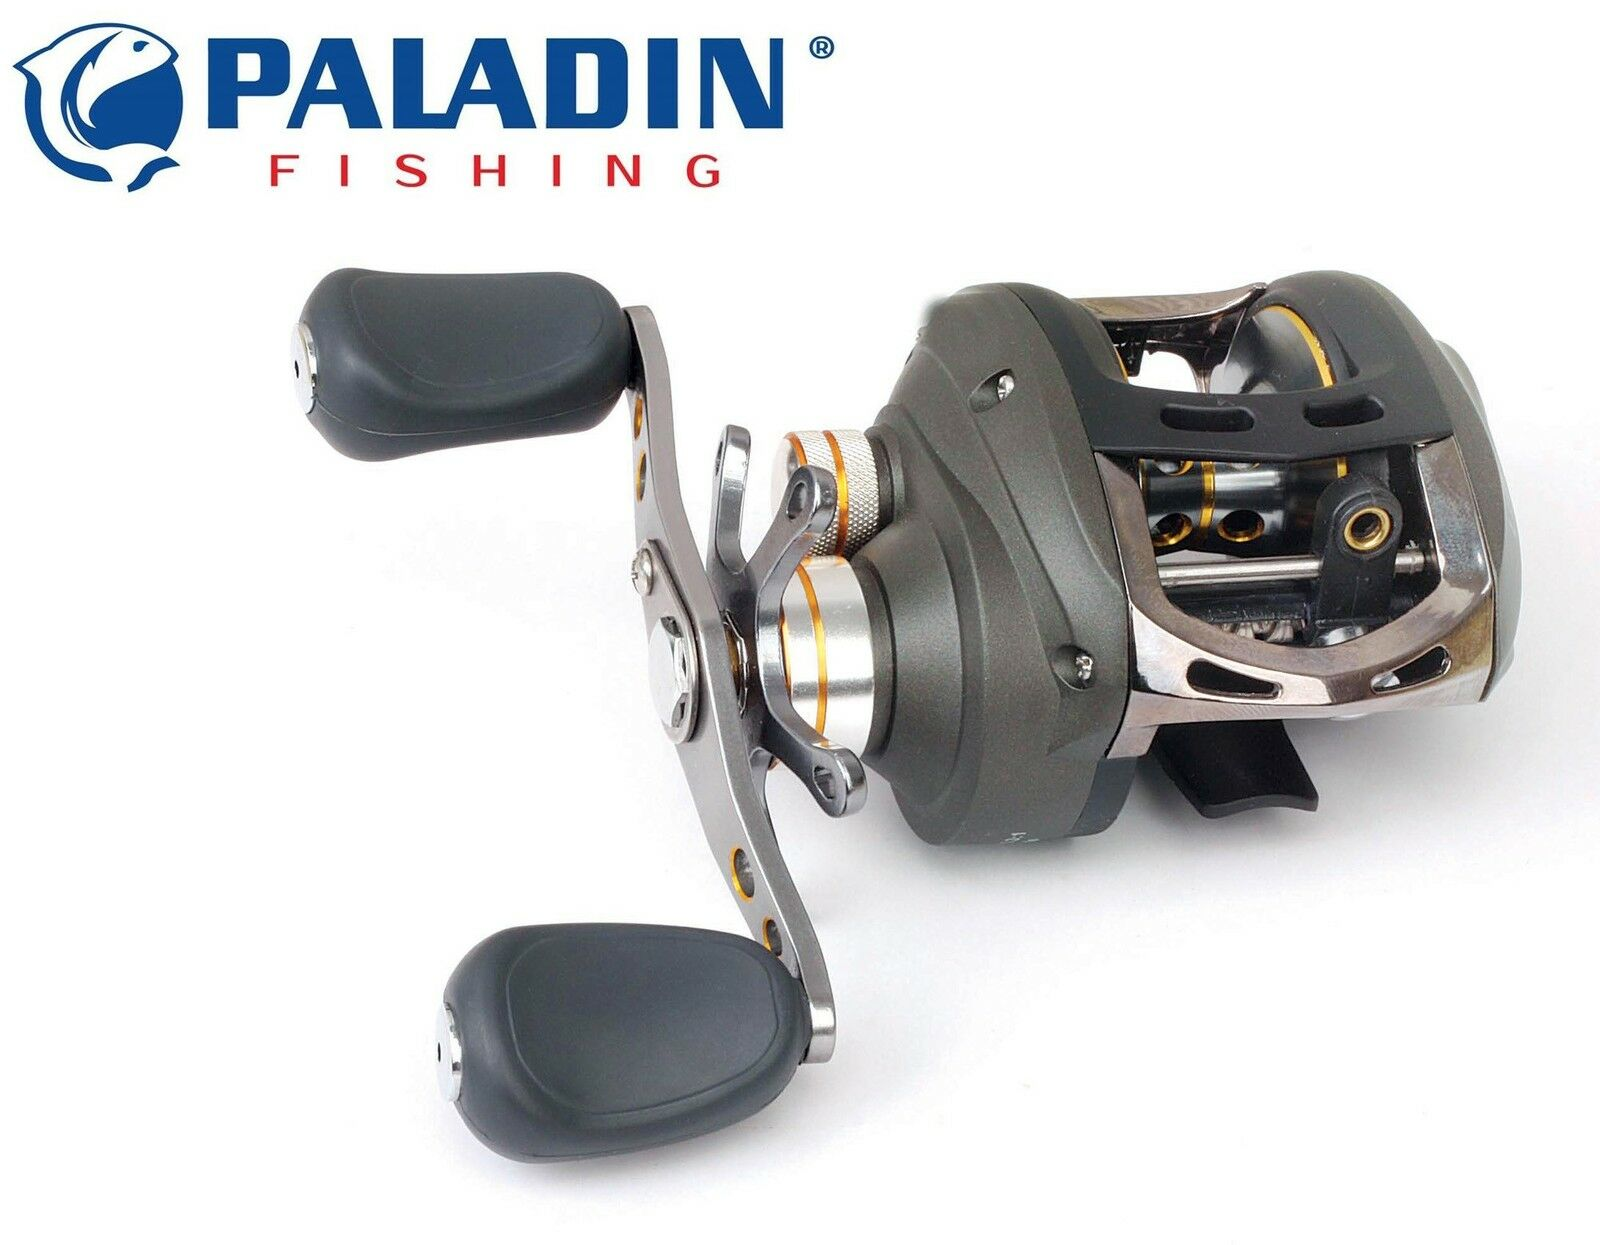 Paladin Palcast DLX-R - Multirolle, Baitcaster Rolle, Spinnrolle, Angelrolle